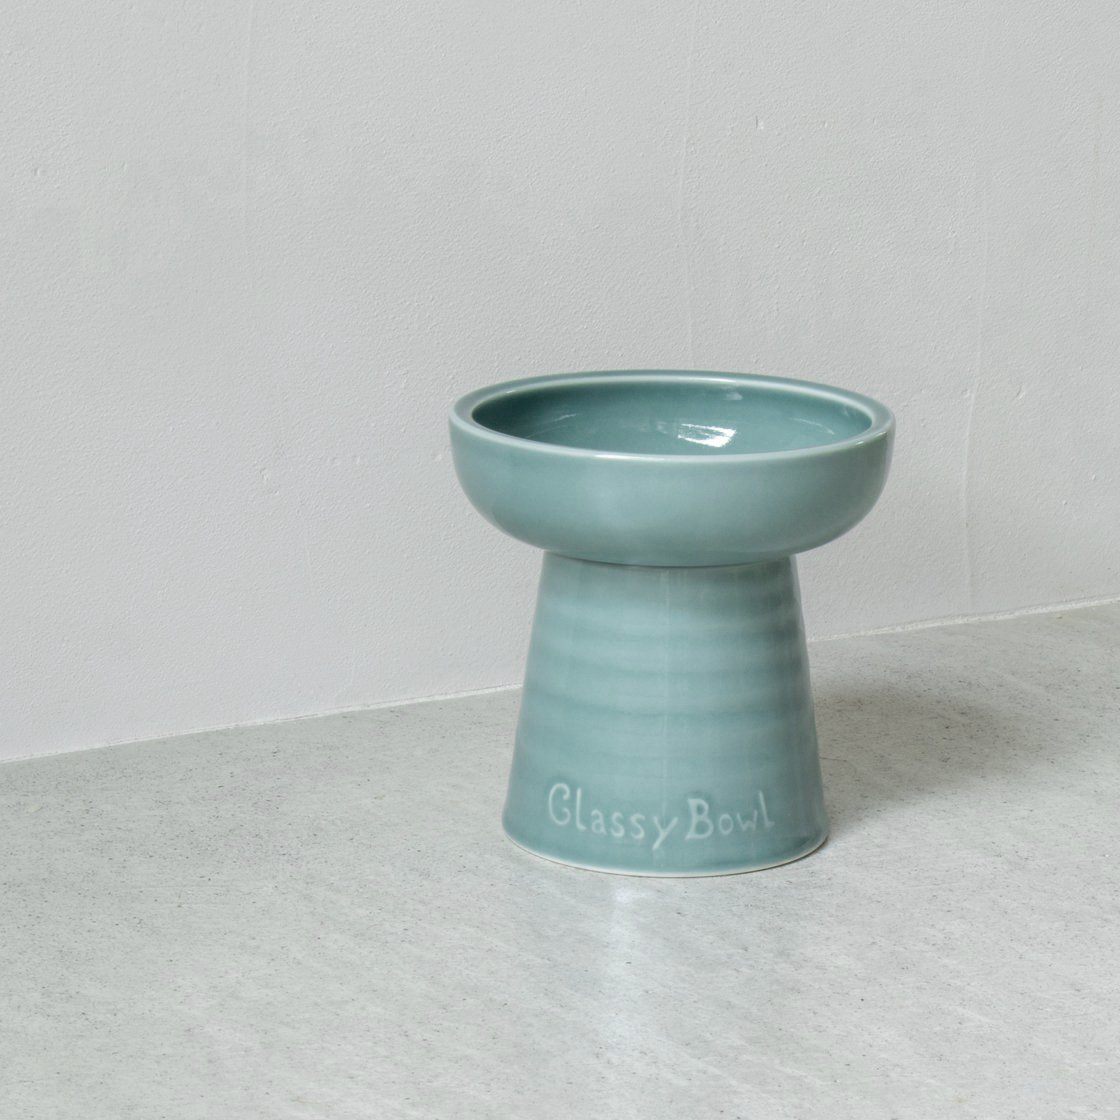 <img class='new_mark_img1' src='https://img.shop-pro.jp/img/new/icons5.gif' style='border:none;display:inline;margin:0px;padding:0px;width:auto;' />Classy Bowl【5インチ】ターコイズ Made in Japan